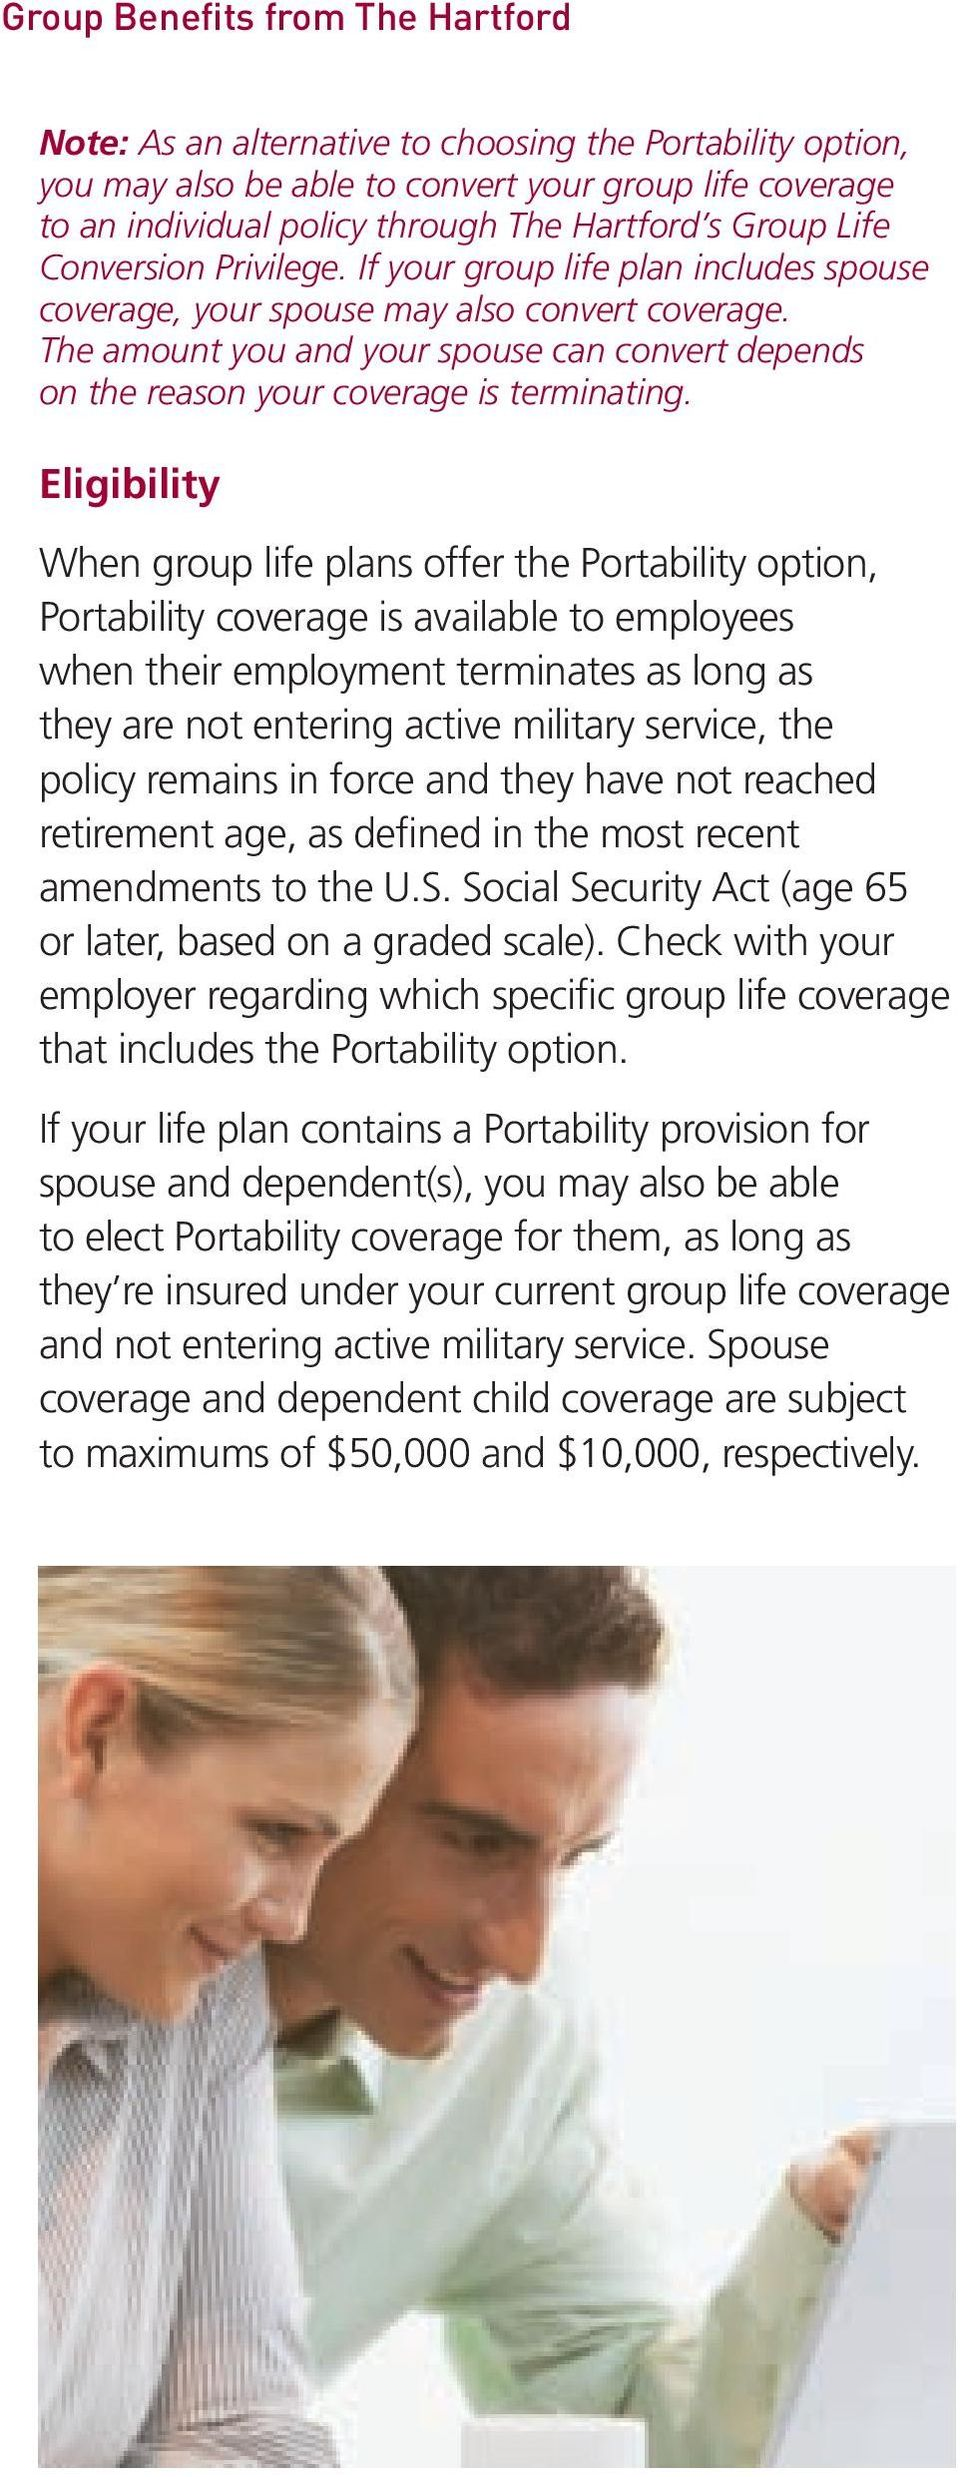 Eligibility When group life plans offer the Portability option, Portability coverage is available to employees when their employment terminates as long as they are not entering active military